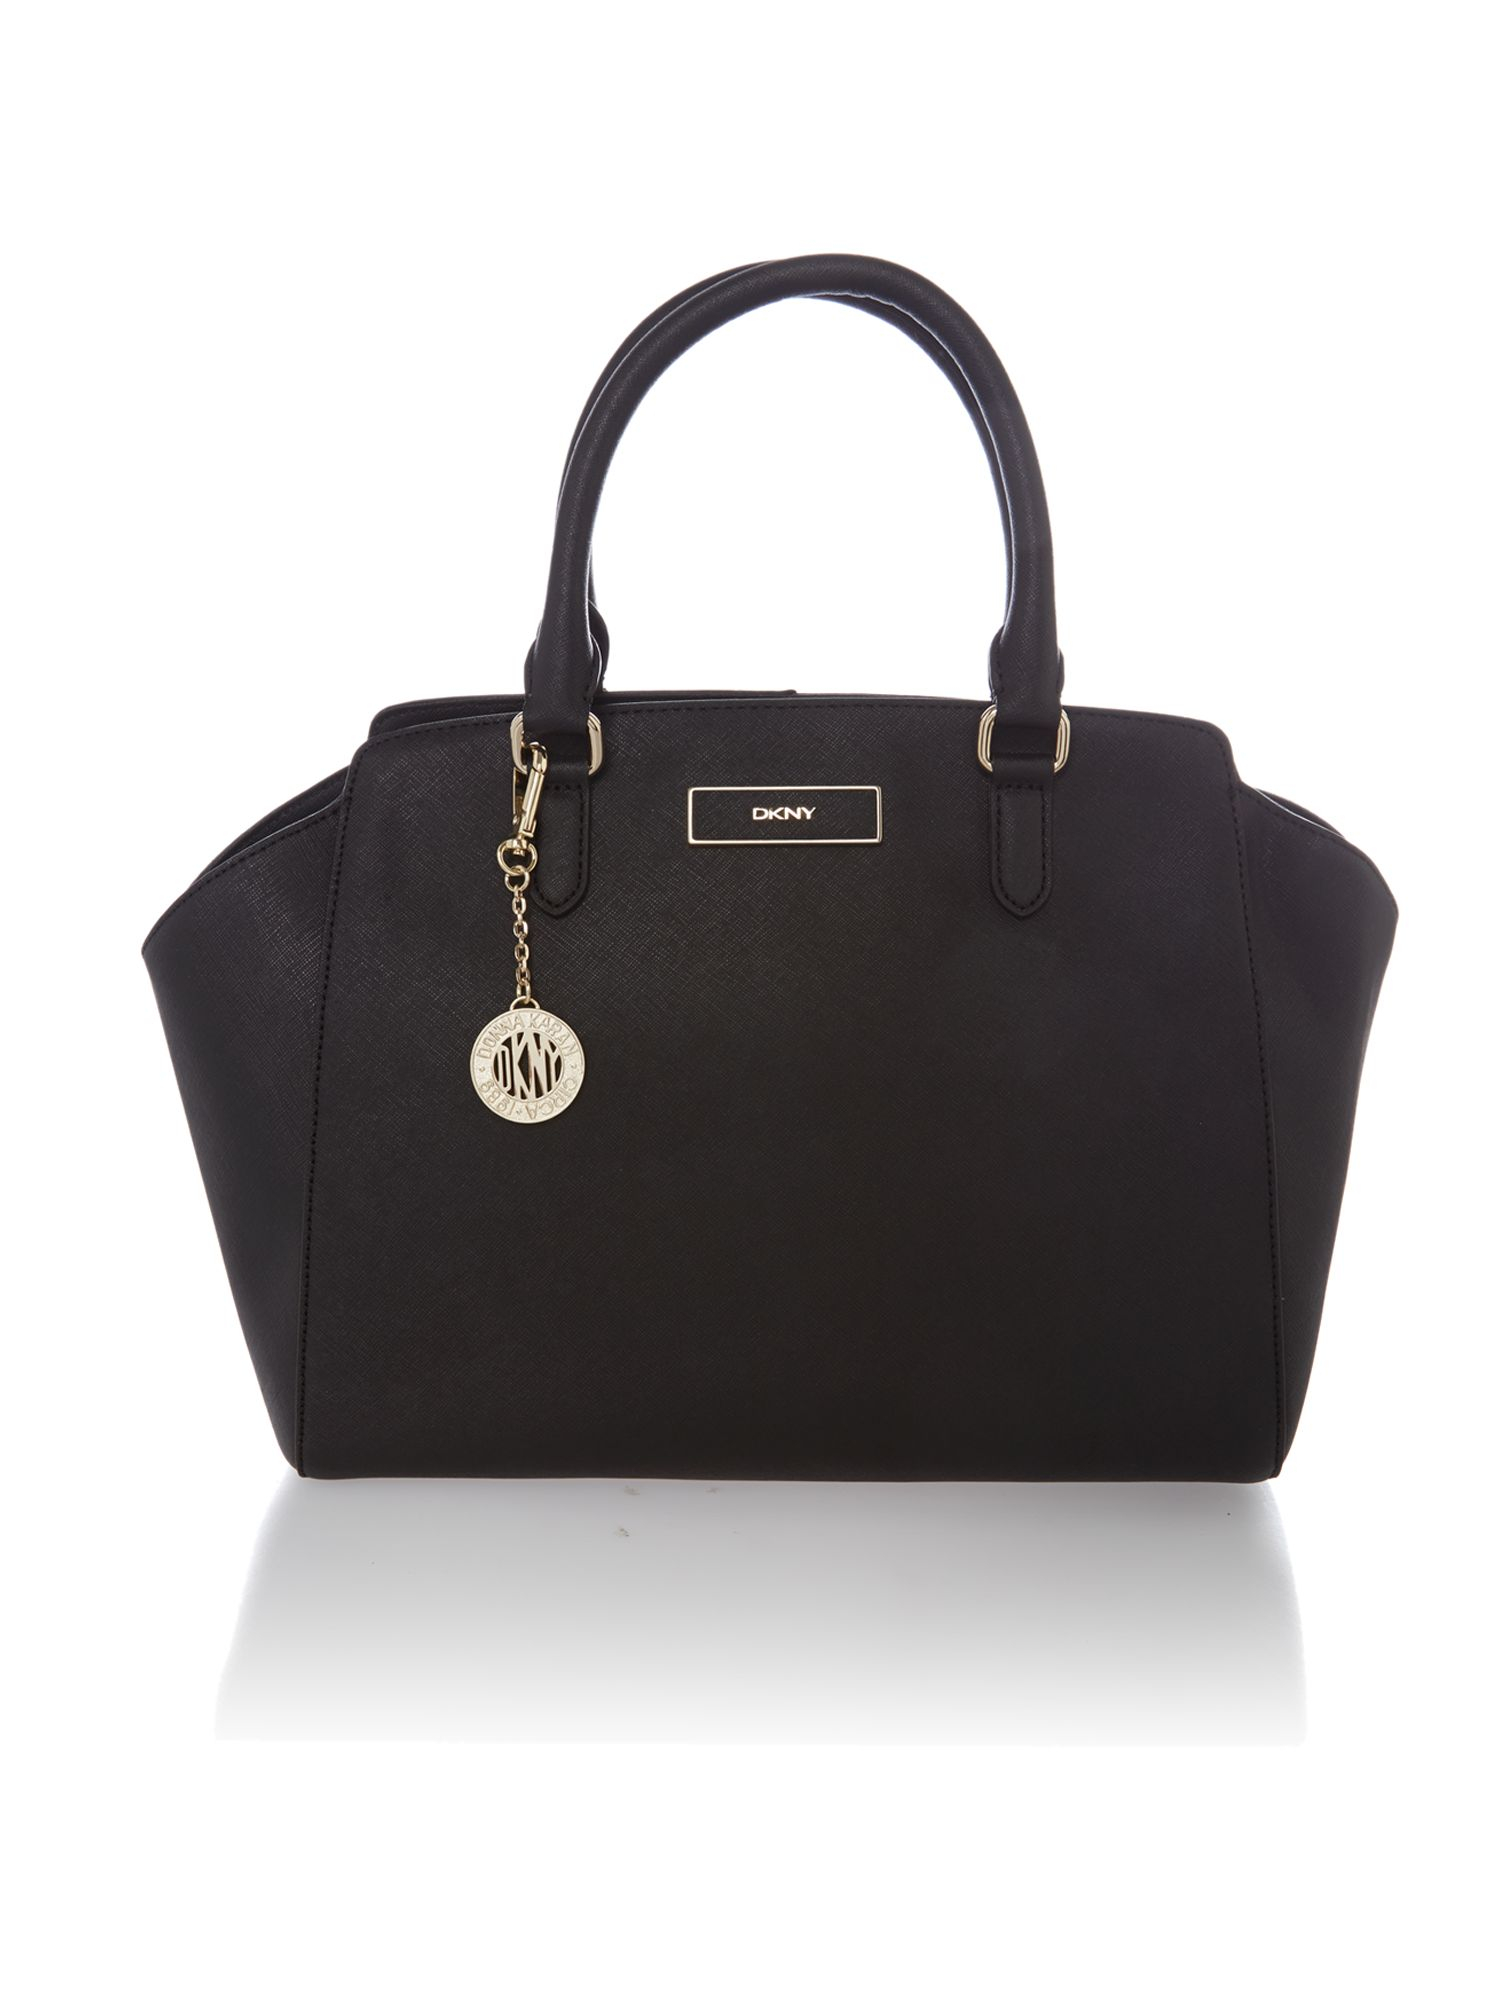 dkny saffiano black large tote bag in black lyst